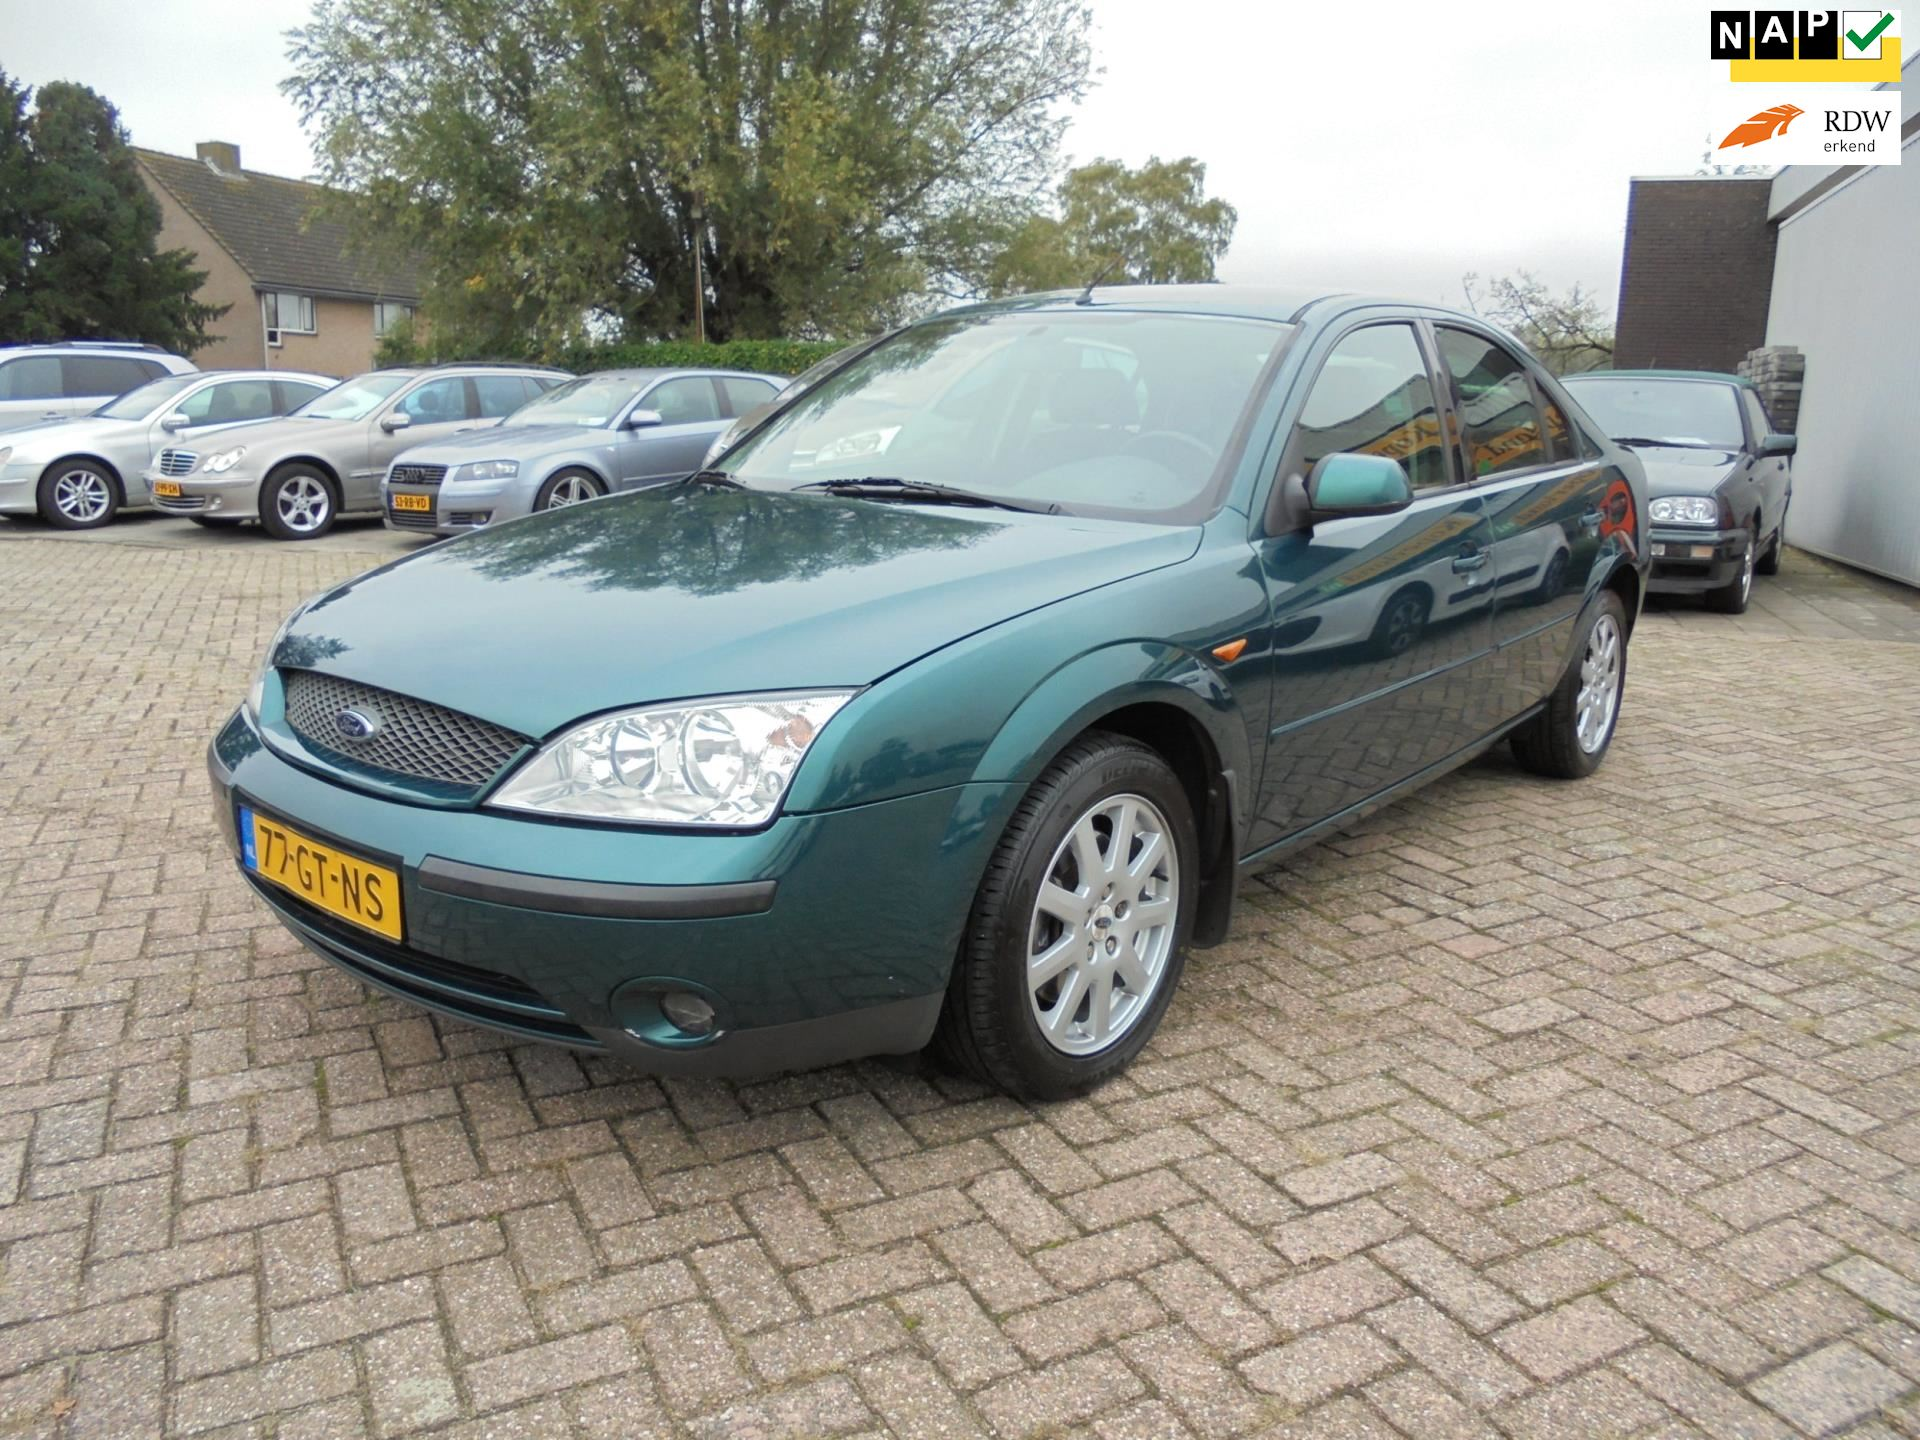 Ford Mondeo 18 16v First Edition 2001 Apk Lm